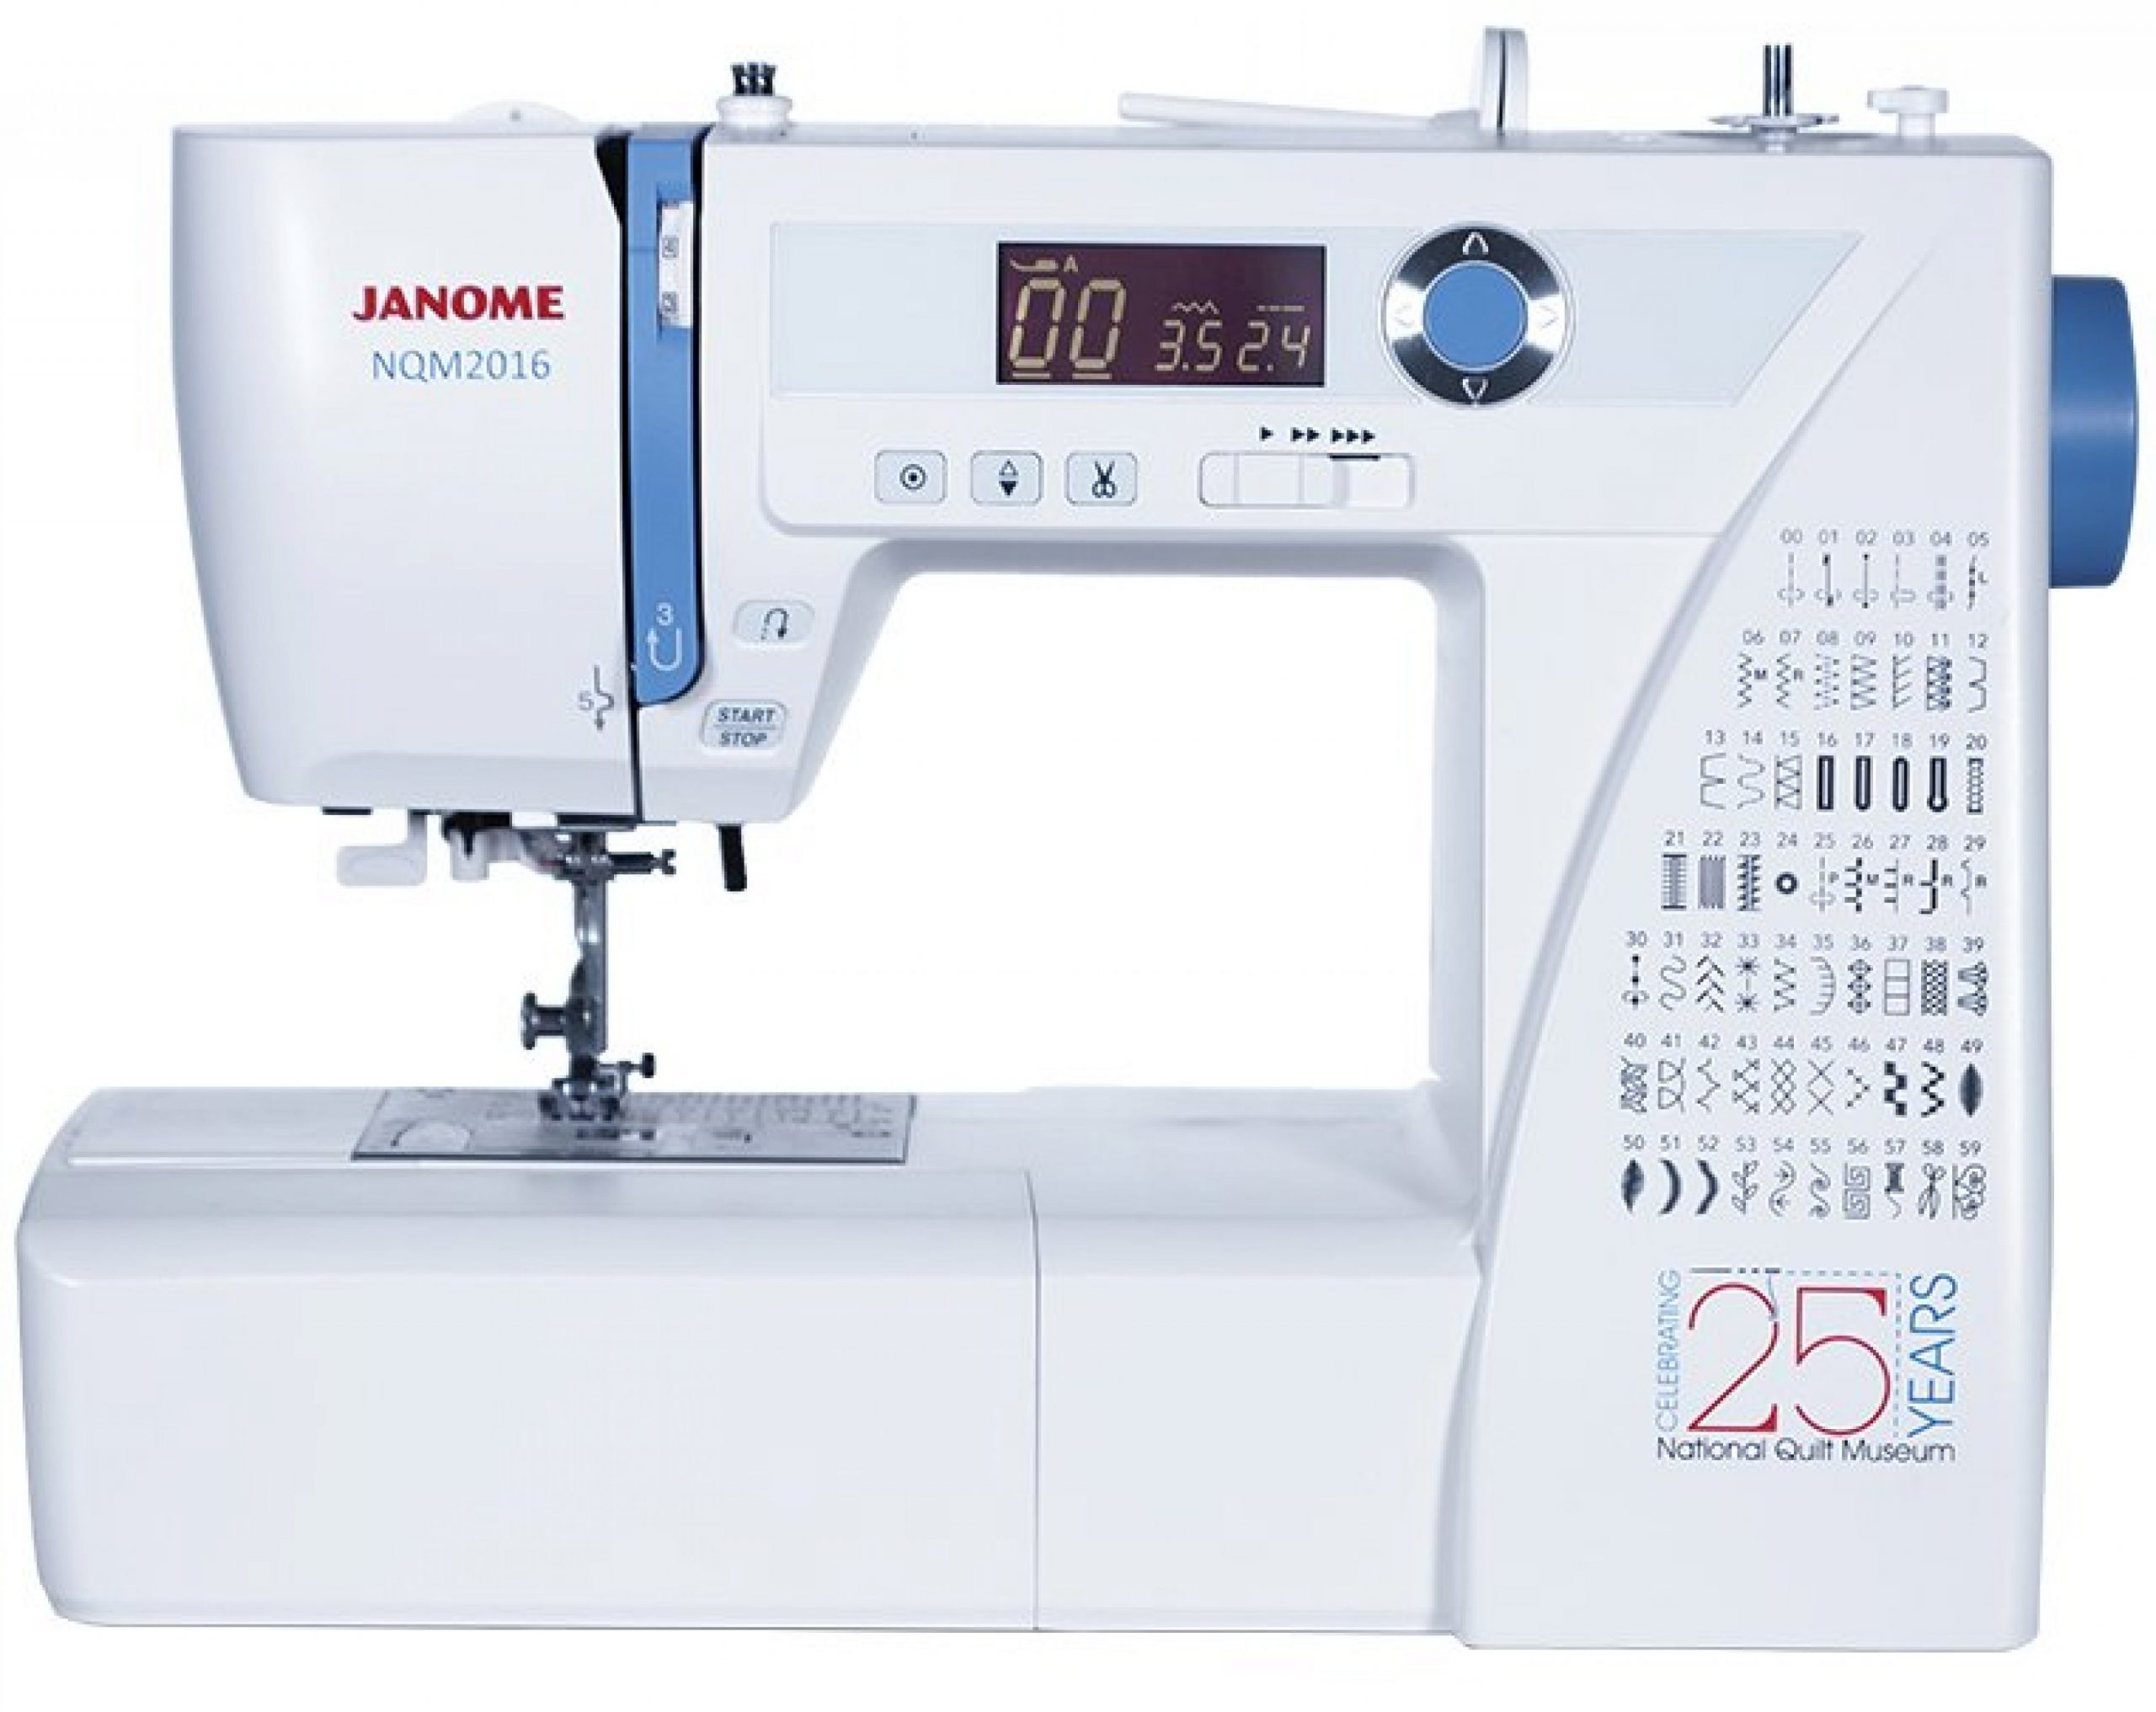 quilting group se quilt edition franklins machine janome product limited special horizon